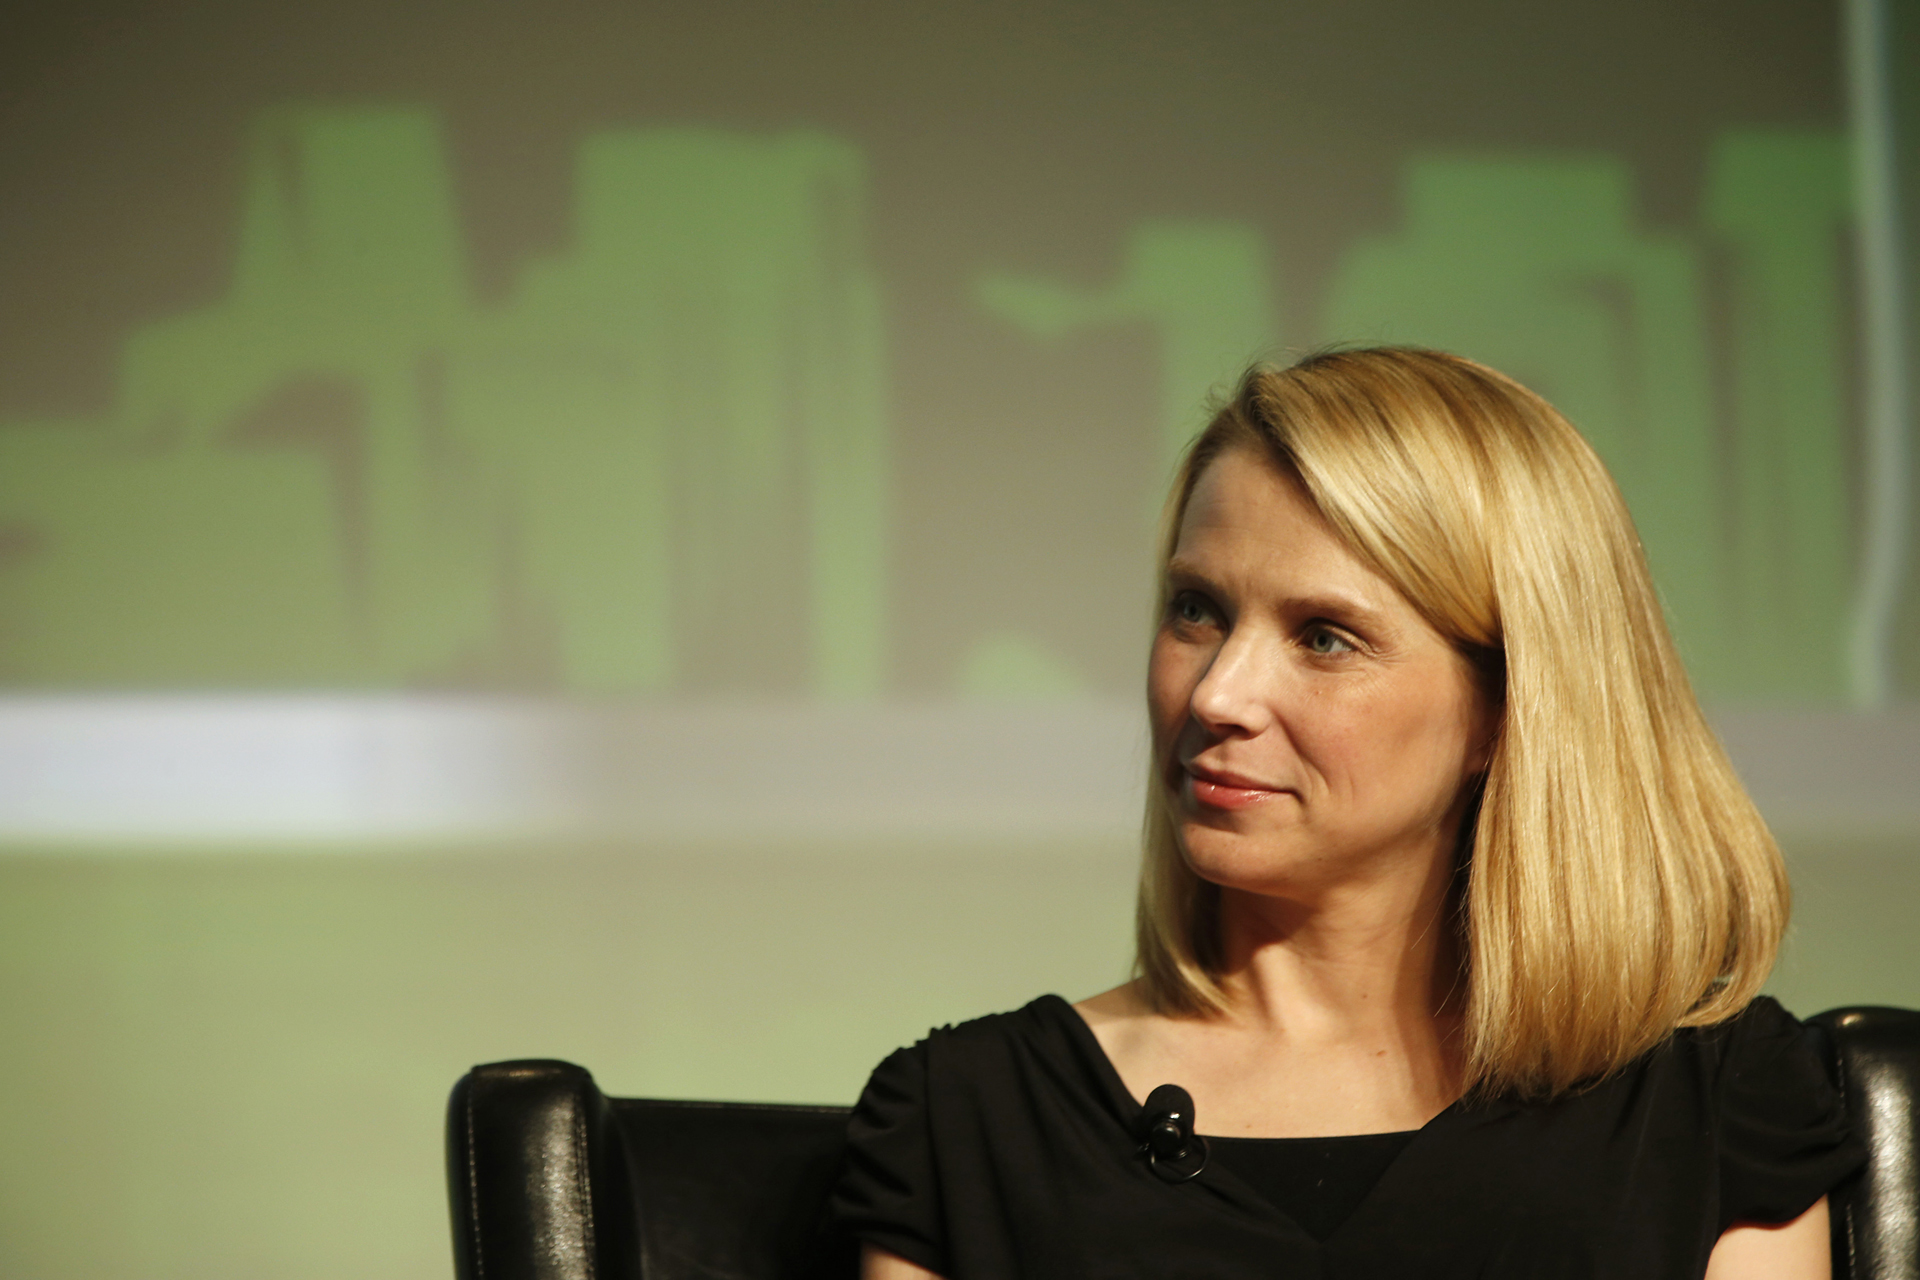 Ex-Yahoo boss Marissa Mayer looks to turn funeral home into club for working women